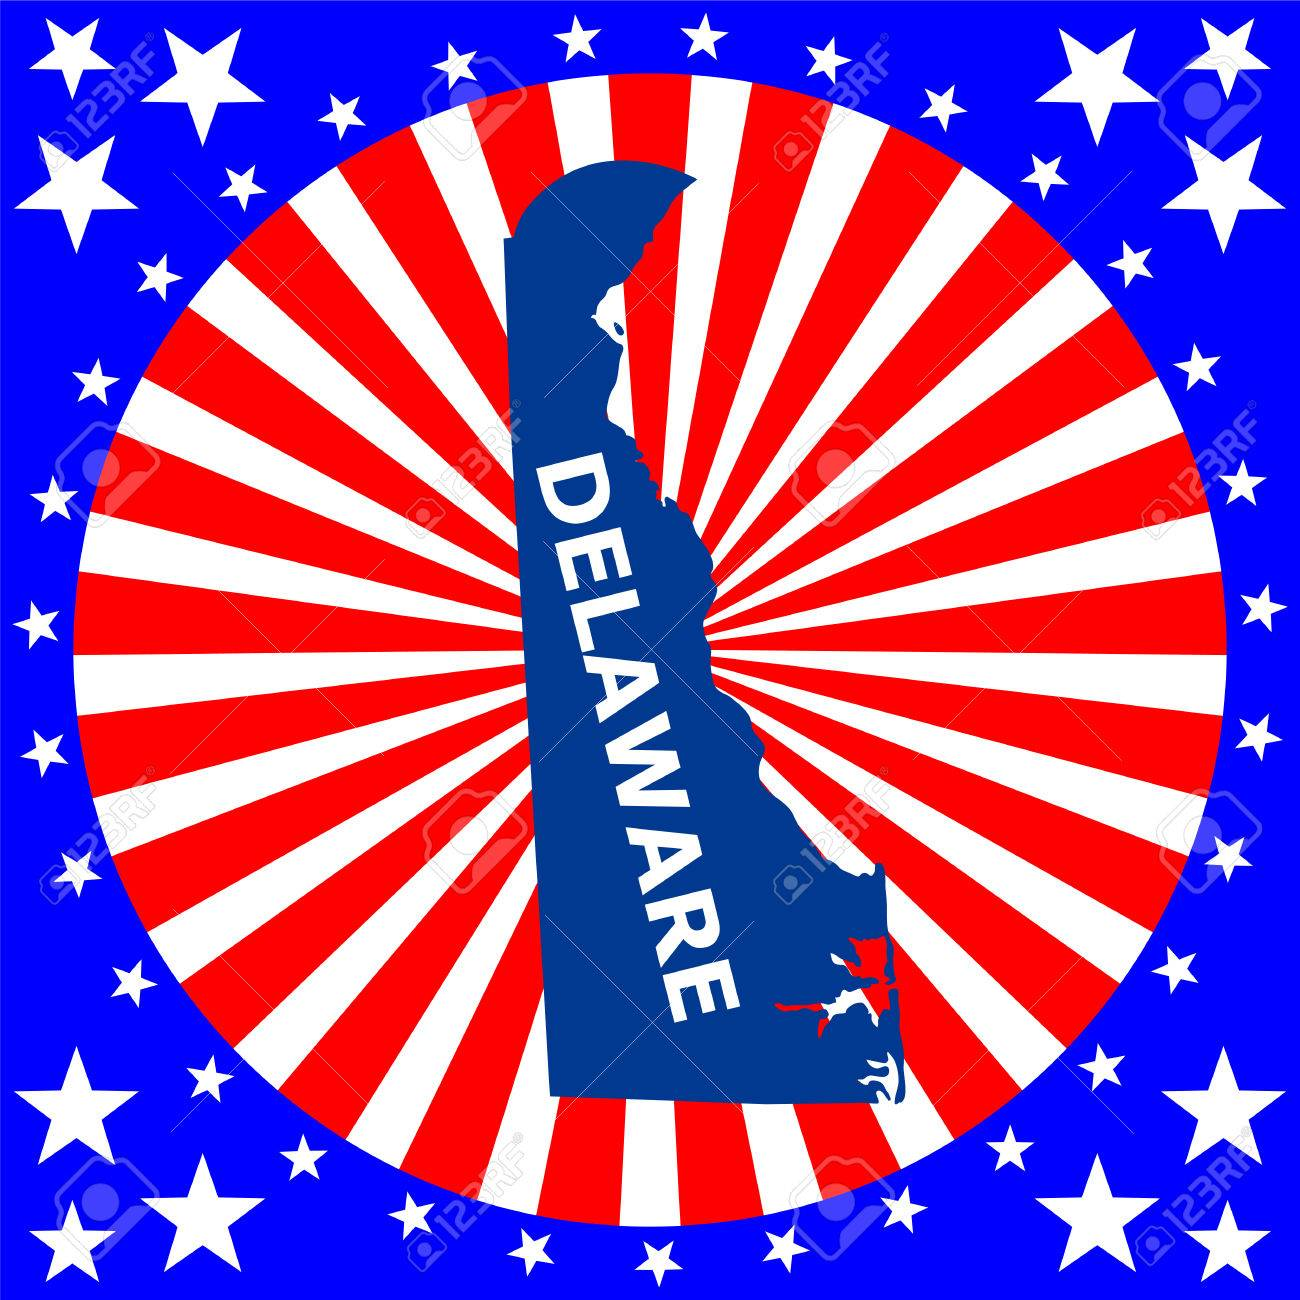 Map Of The U S State Of Delaware Royalty Free Cliparts Vectors - Delaware us map